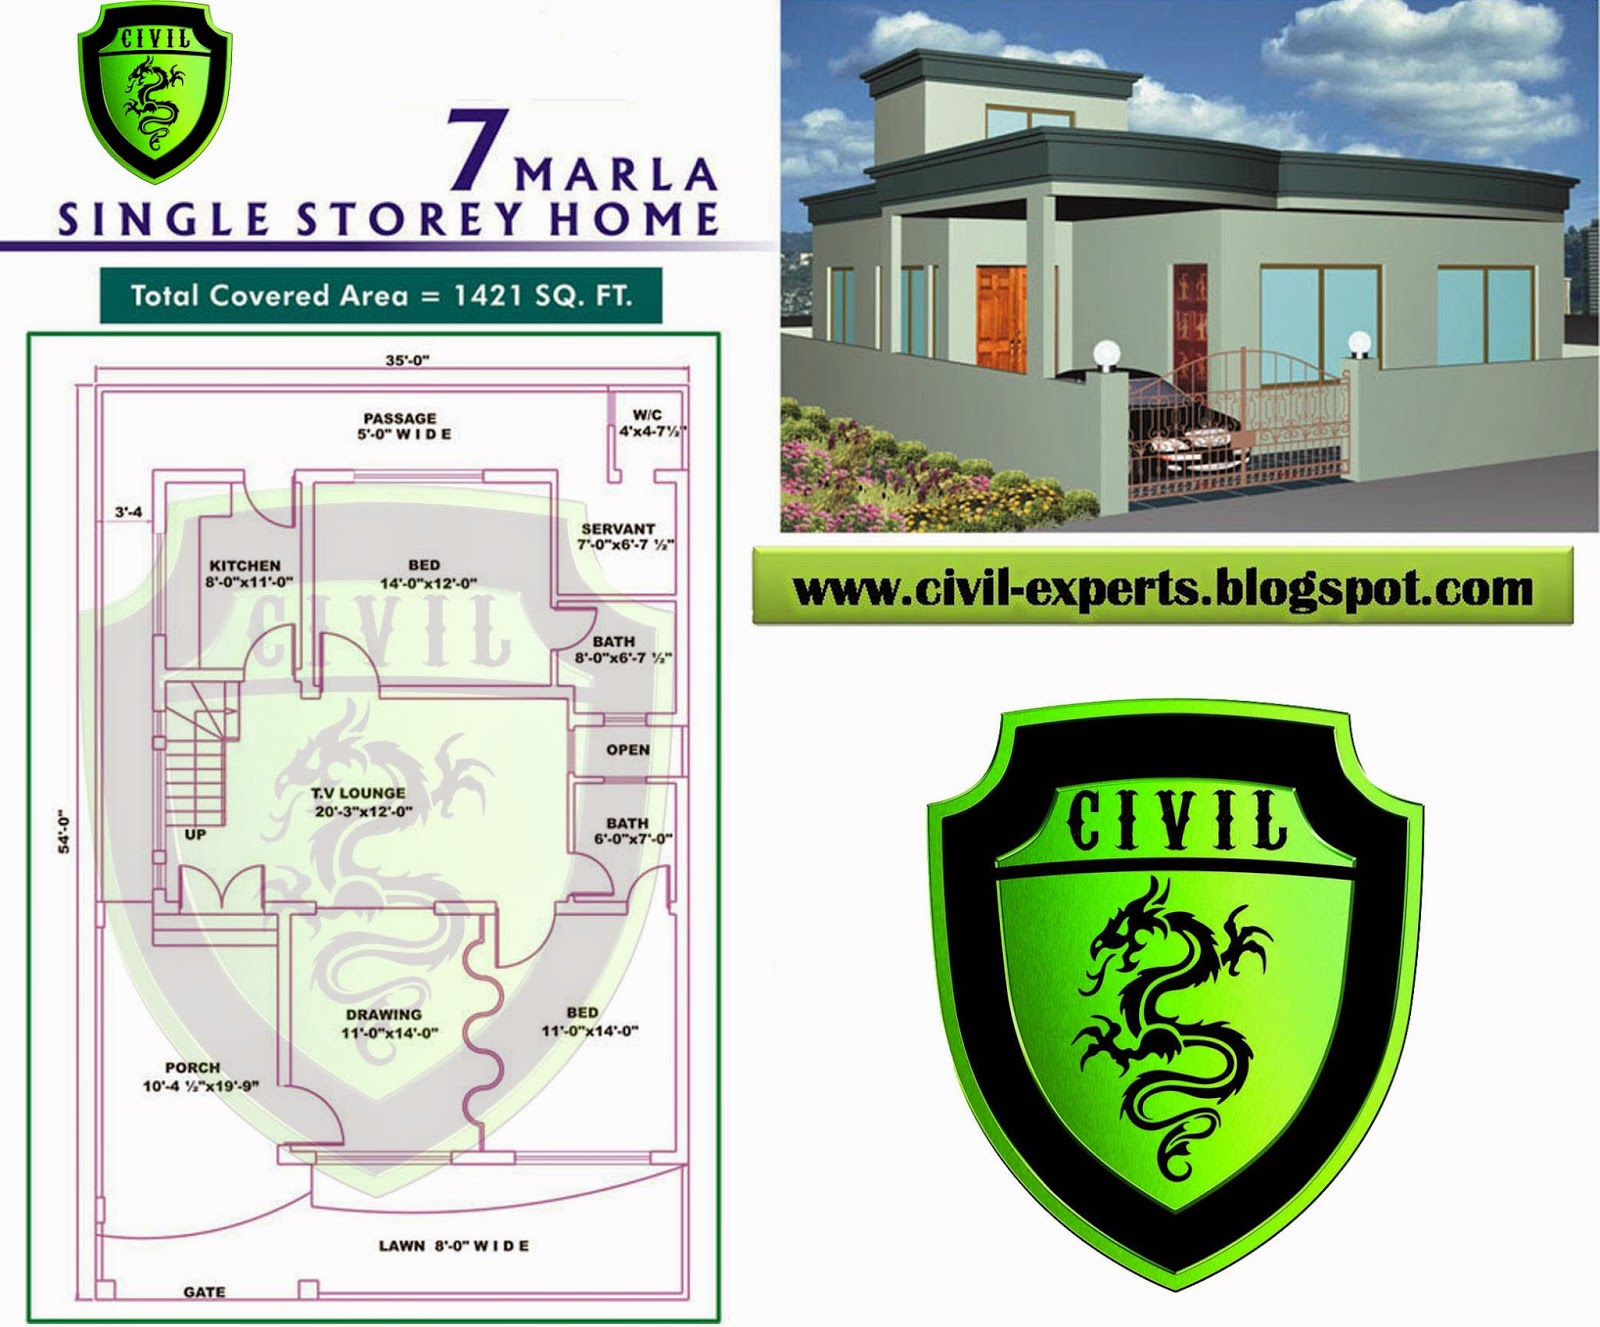 Civil experts 7 marla house plans for House designs 7 marla